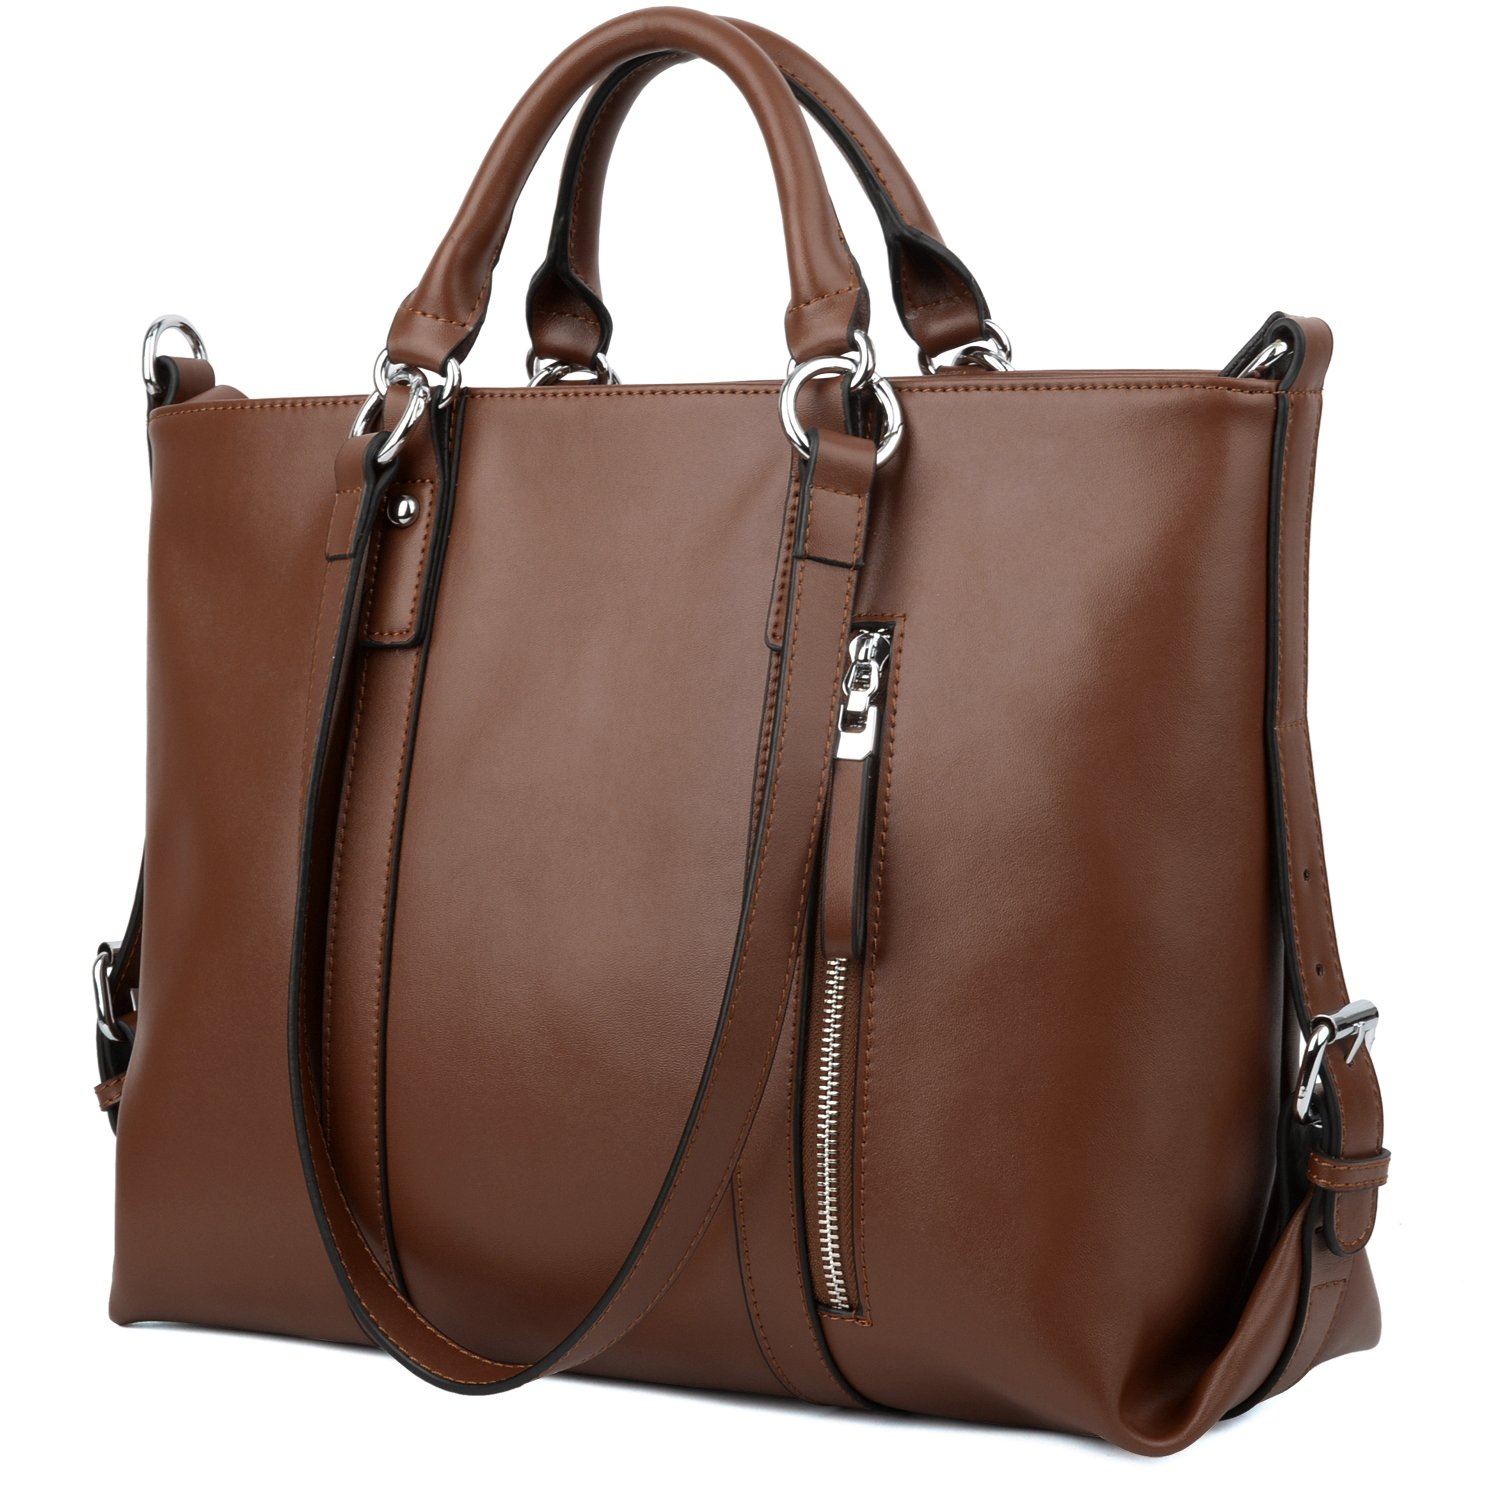 Yaluxe Women's Leather Work Tote Hobo Shoulder Bag 3 Carrying Way Dark Brown 11001692-9